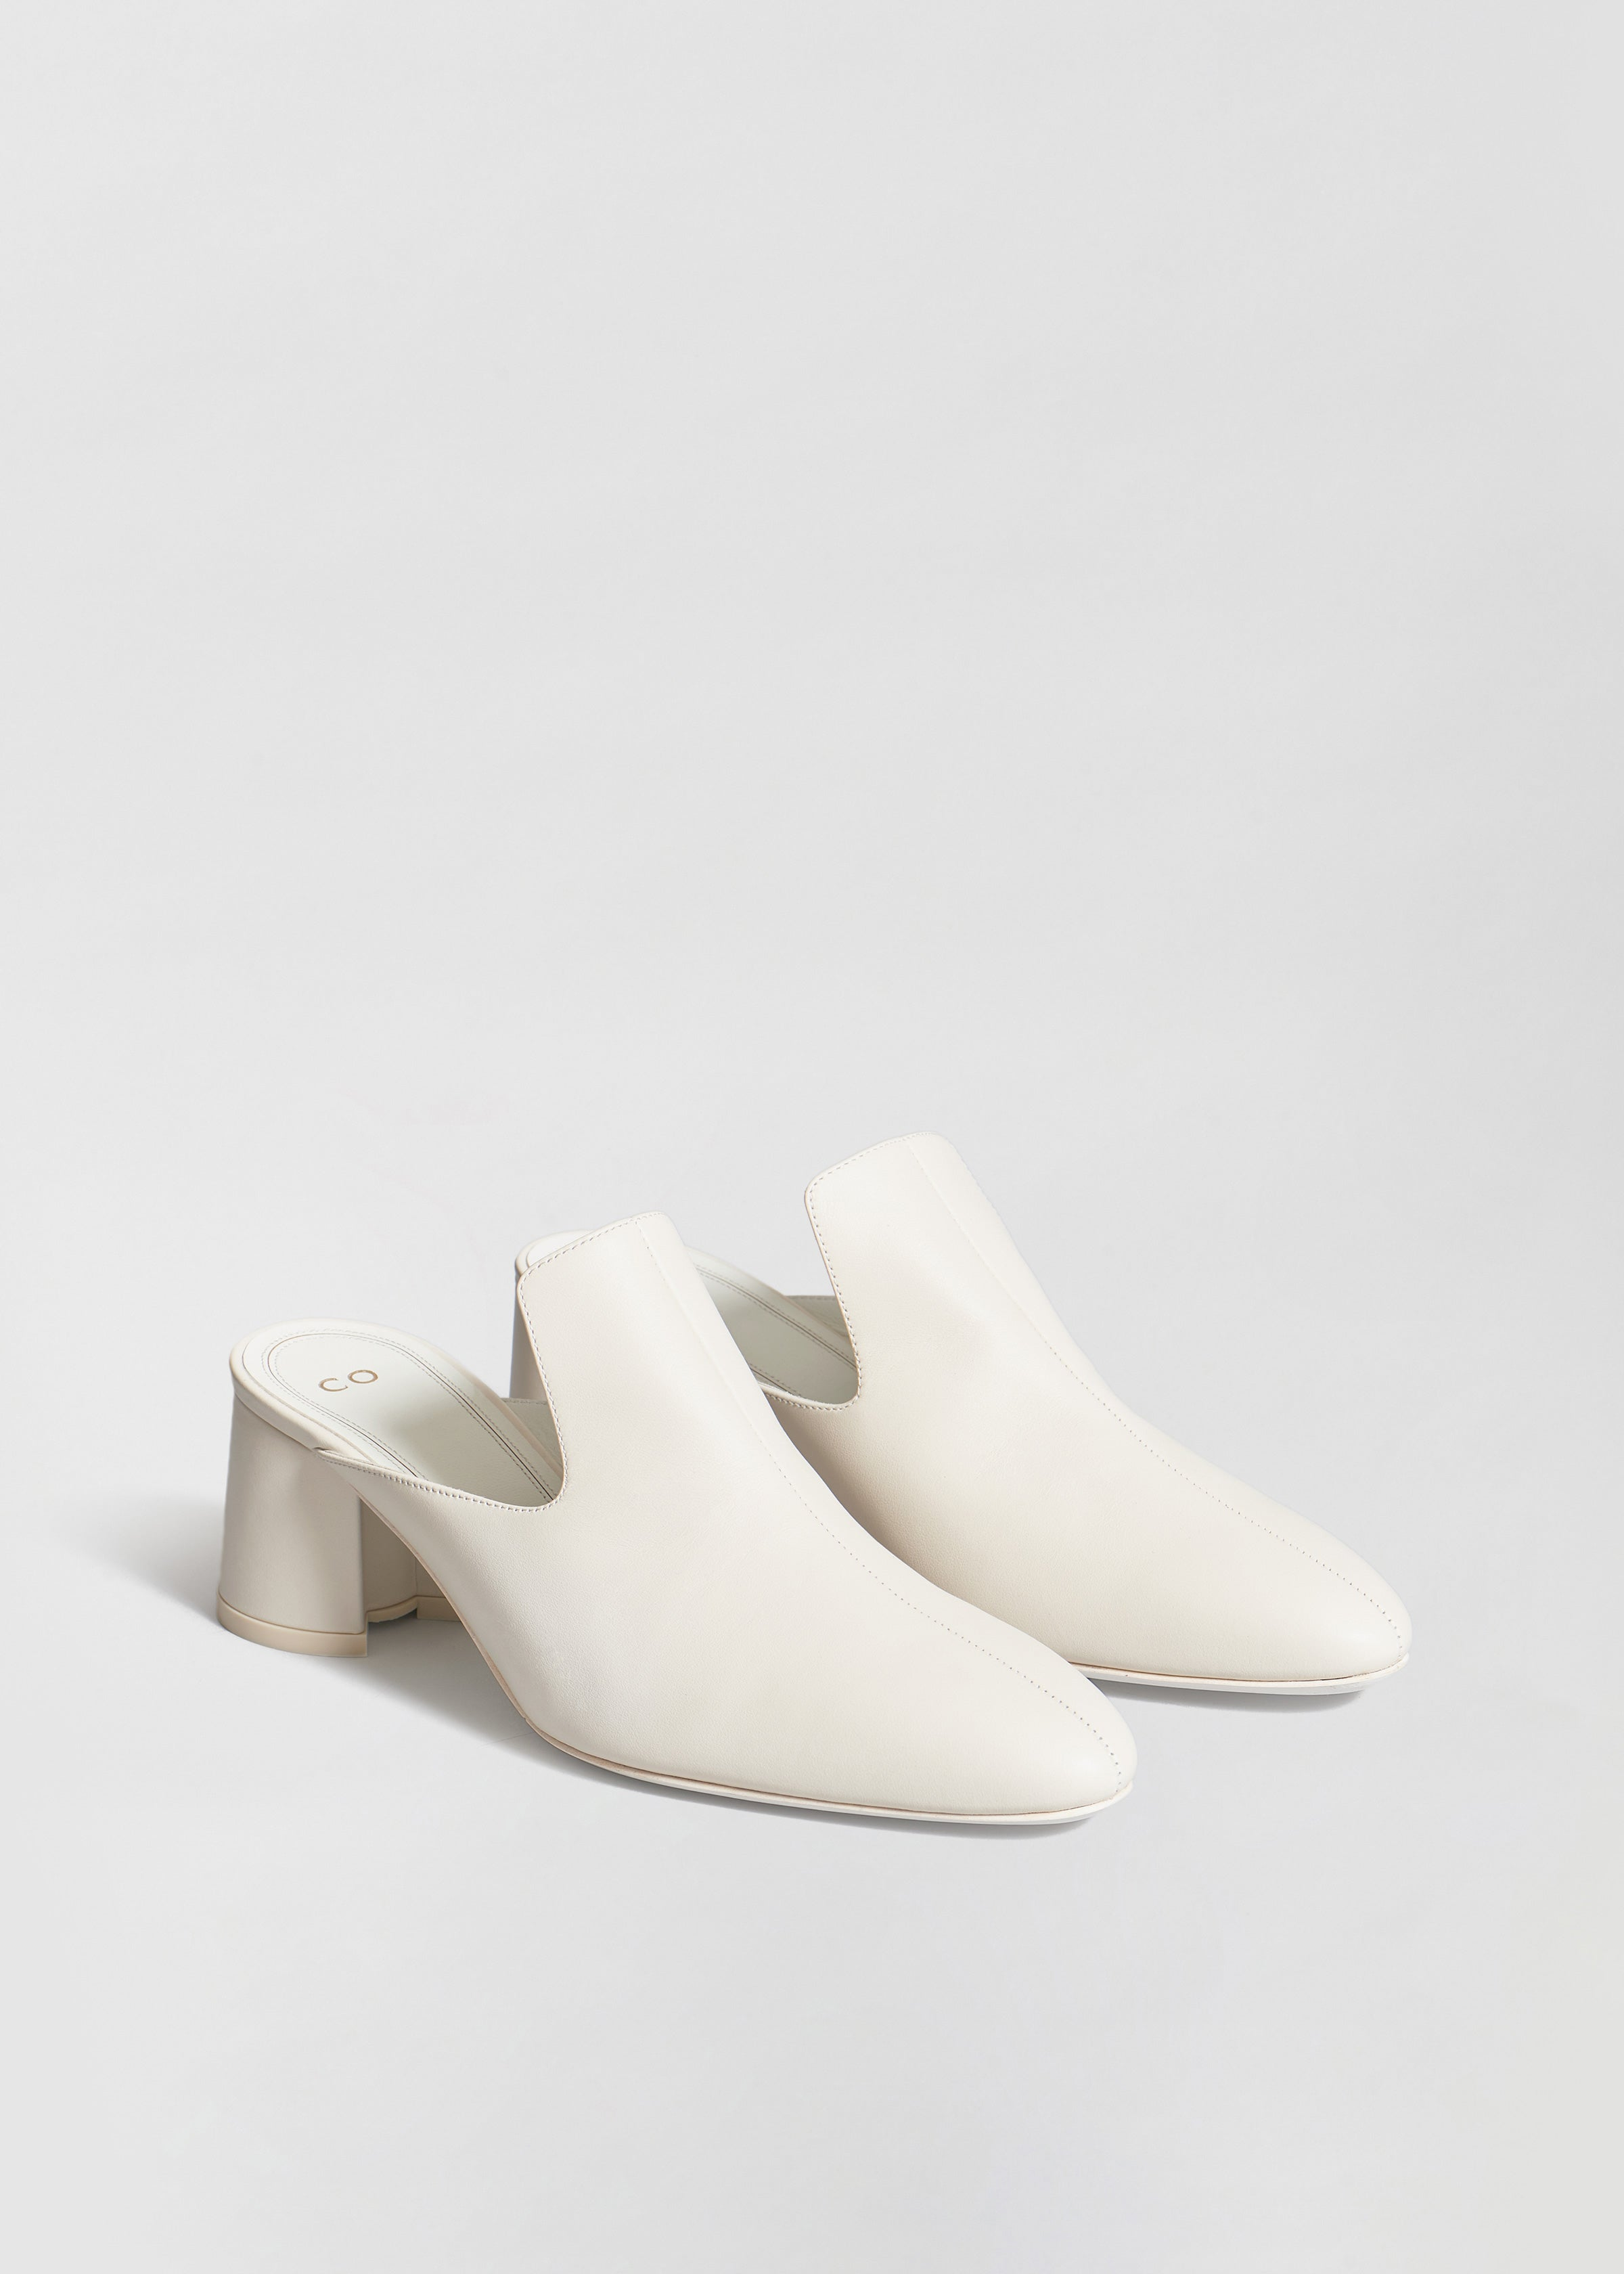 Mule in Smooth Lambskin - Co Collections